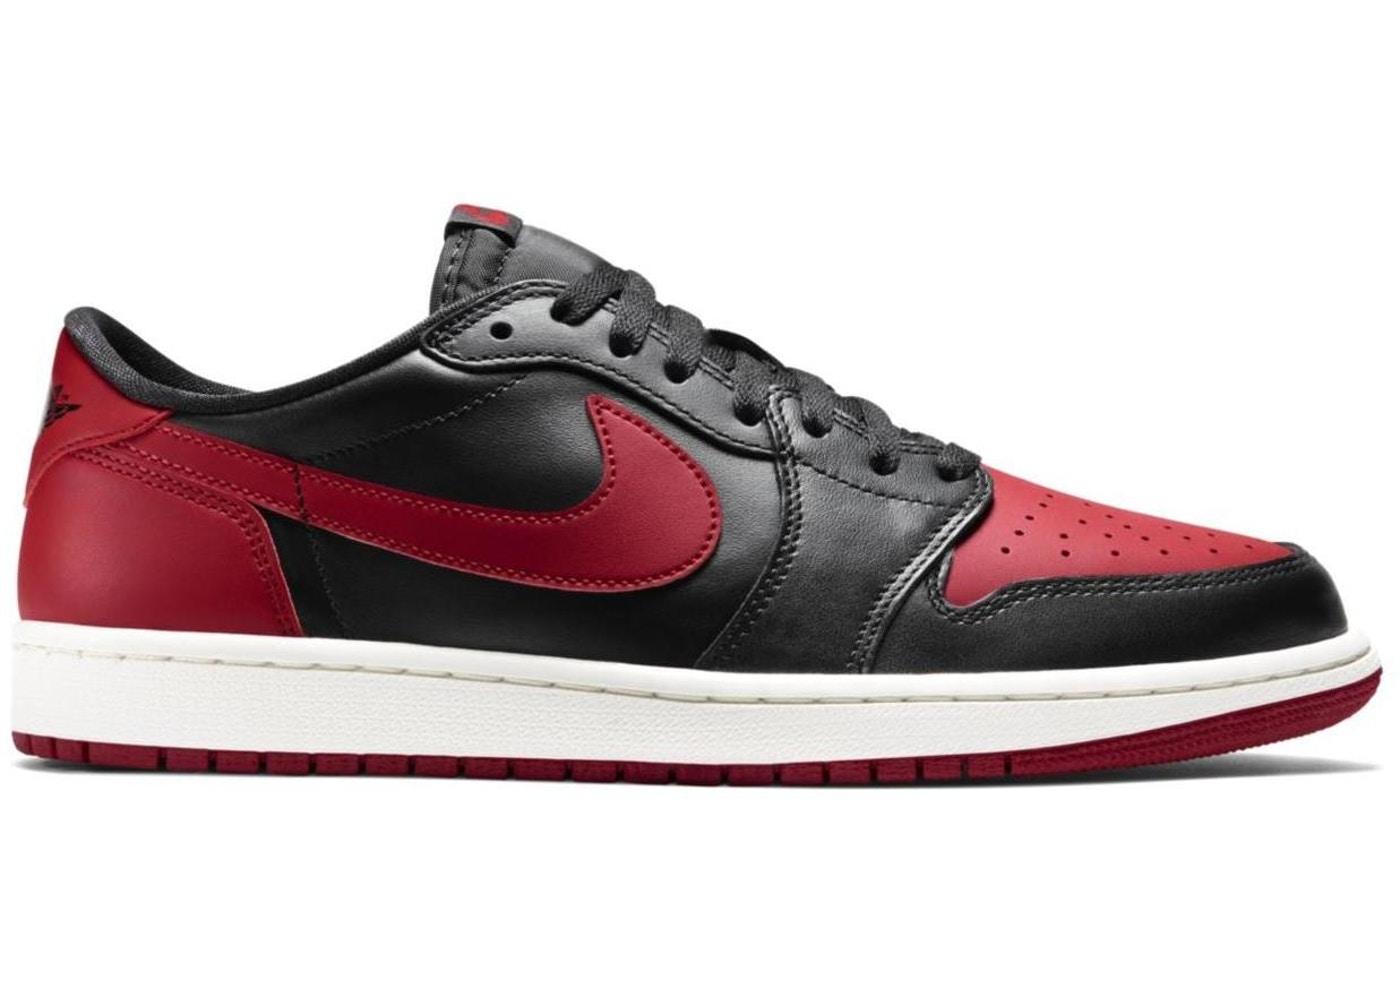 bcce8910ac6df9 Jordan 1 Retro Low Bred (2015) - 705329-001